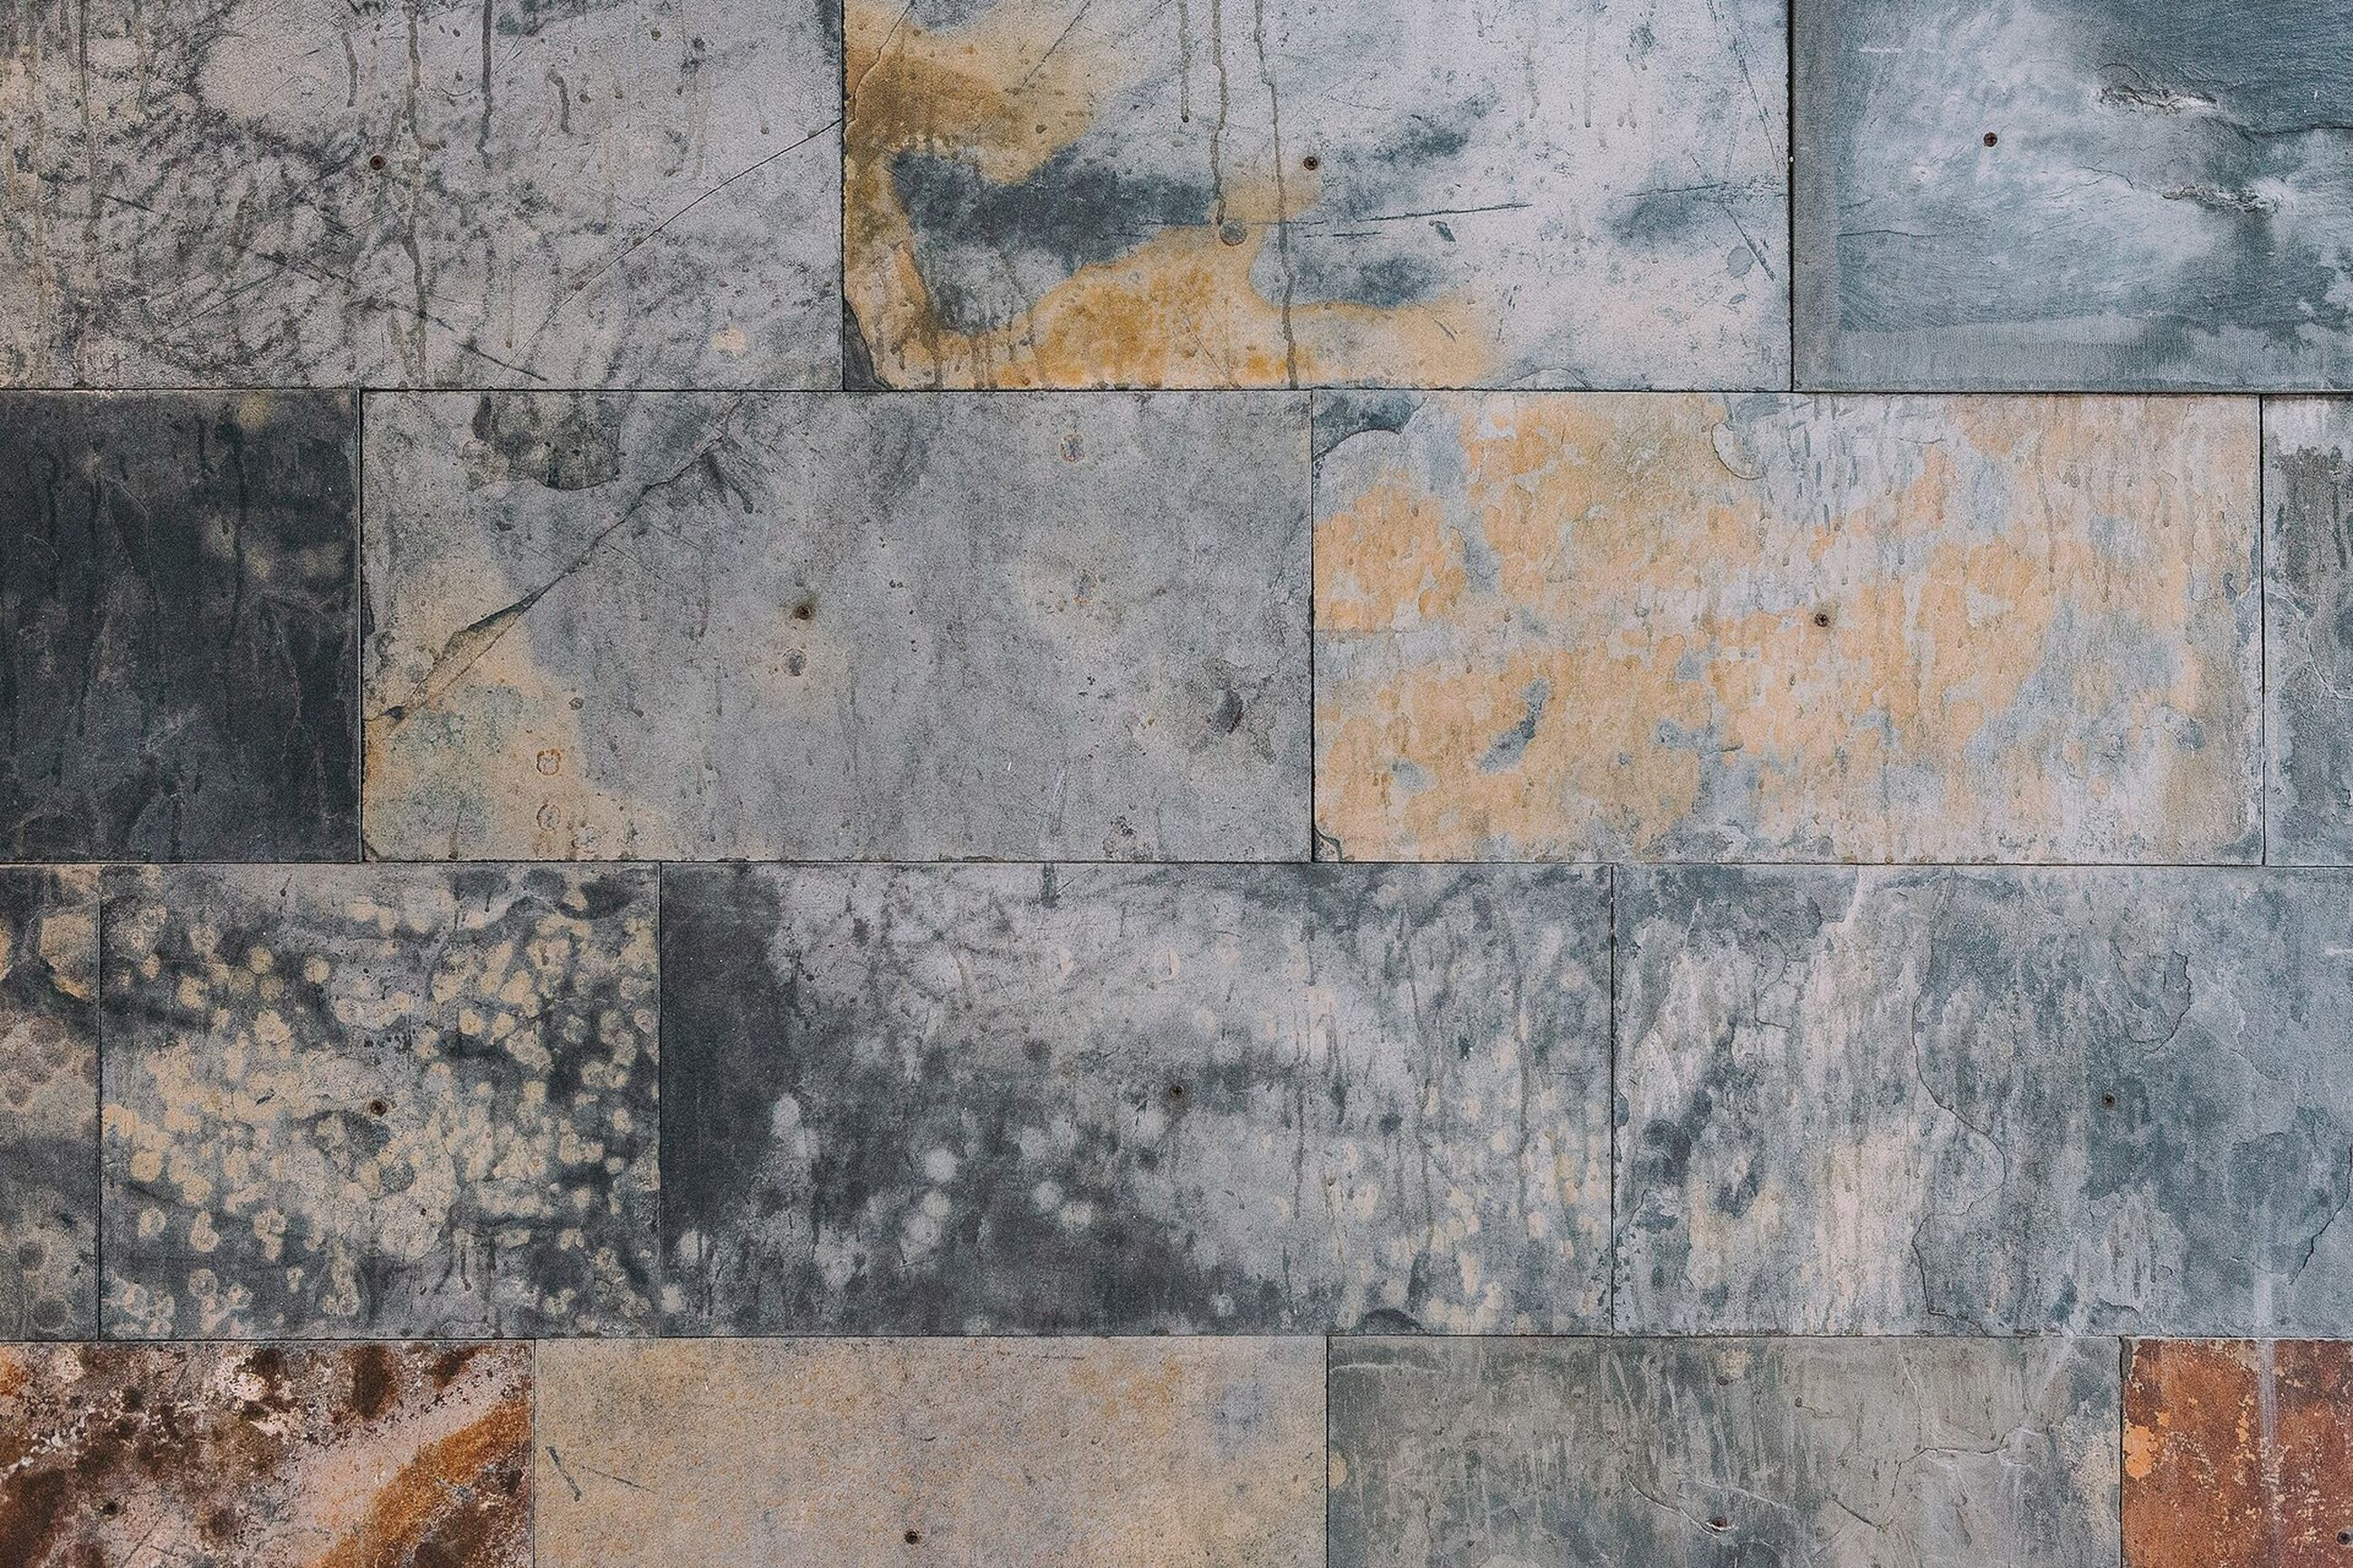 built structure, backgrounds, textured, wall - building feature, rough, full frame, architecture, gray, stone material, abstract, weathered, pattern, no people, building exterior, day, outdoors, close-up